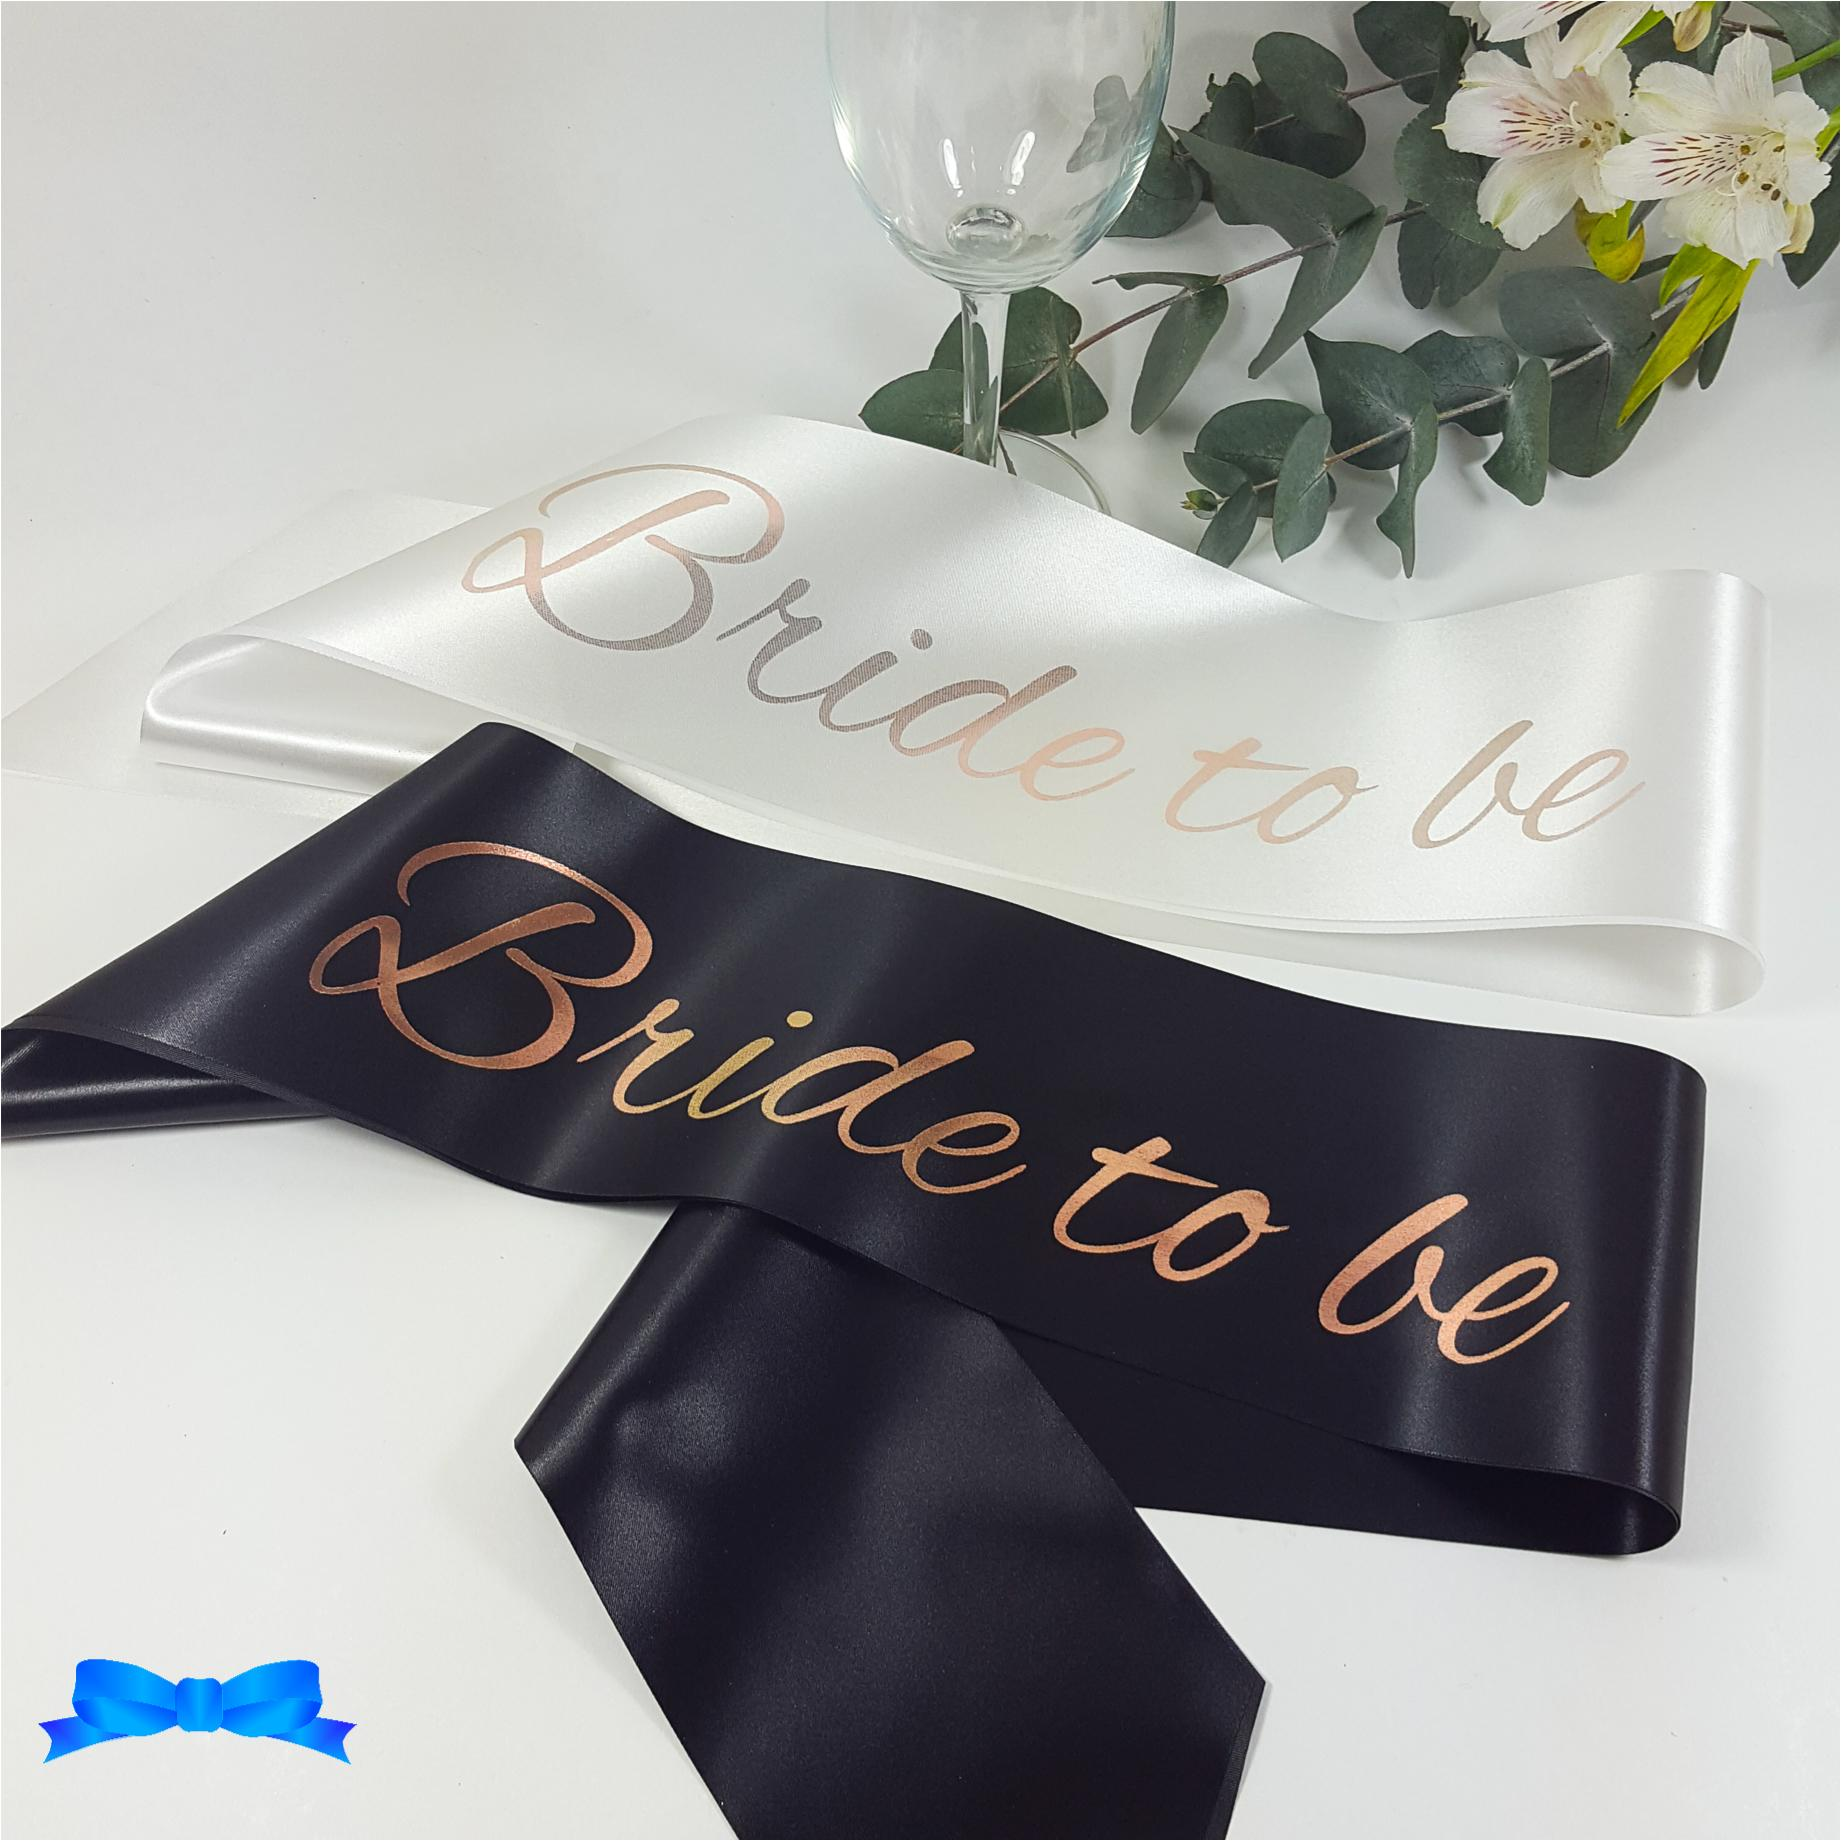 Black and White sashes and rose gold print